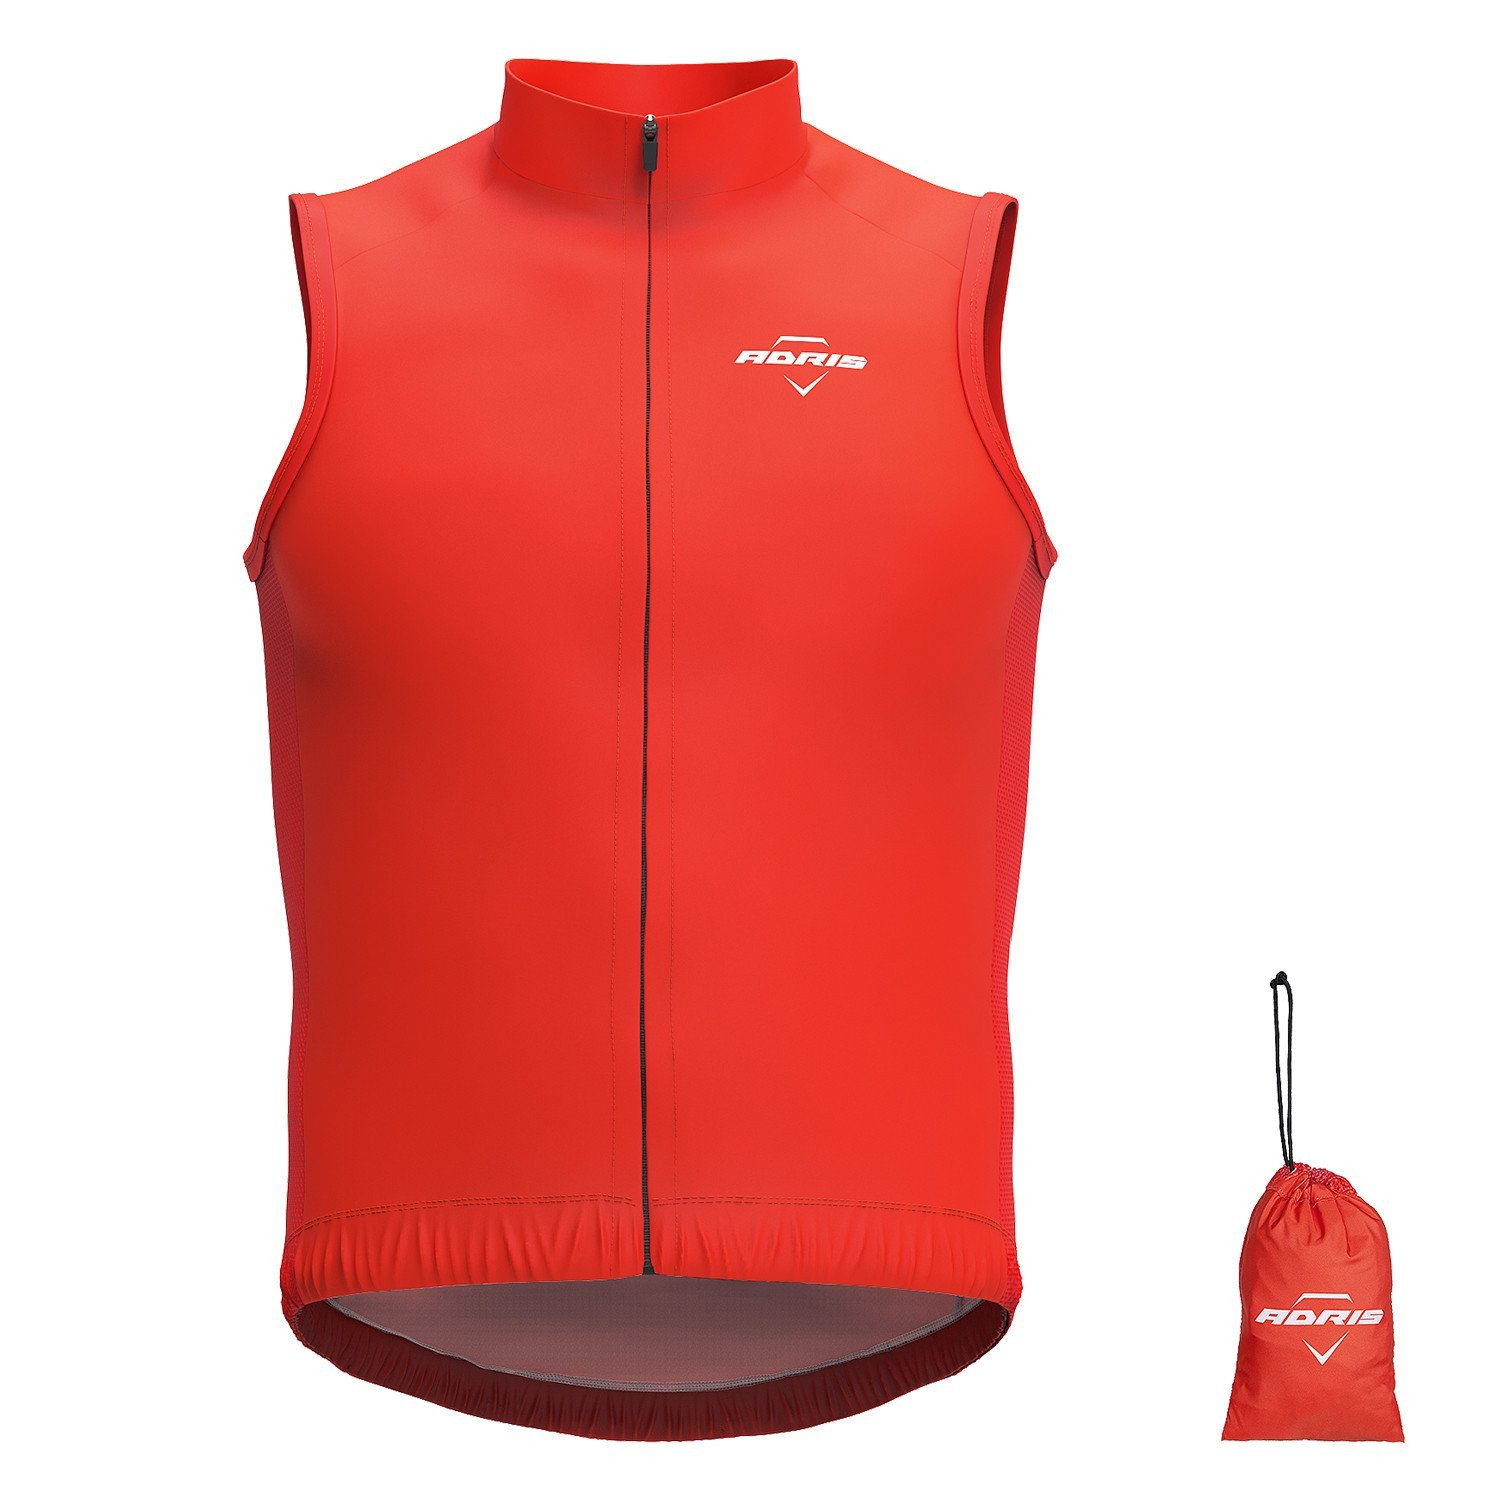 GILET ADRIS LIGHT WIND RED